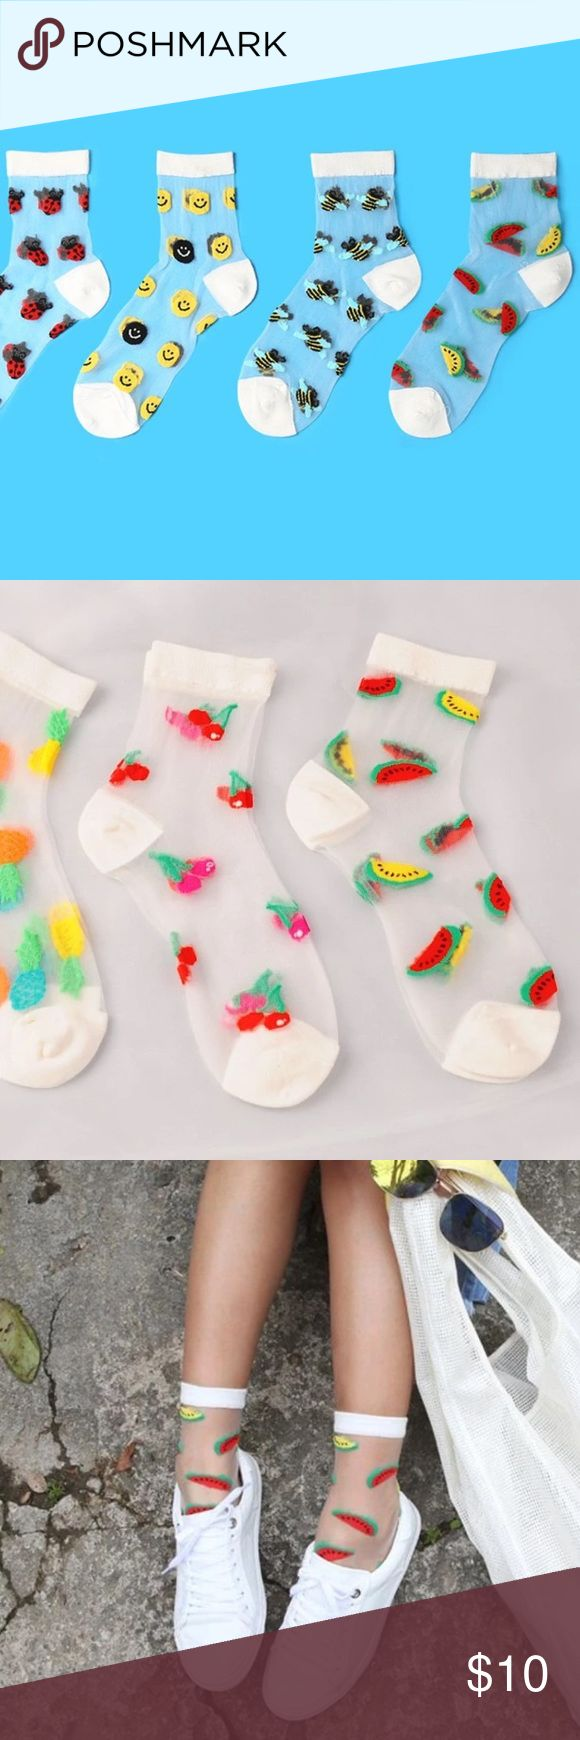 Transparent Watermelon Socks New ✖Fast shipping✖ Urban Outfitters Accessories Hosiery & Socks